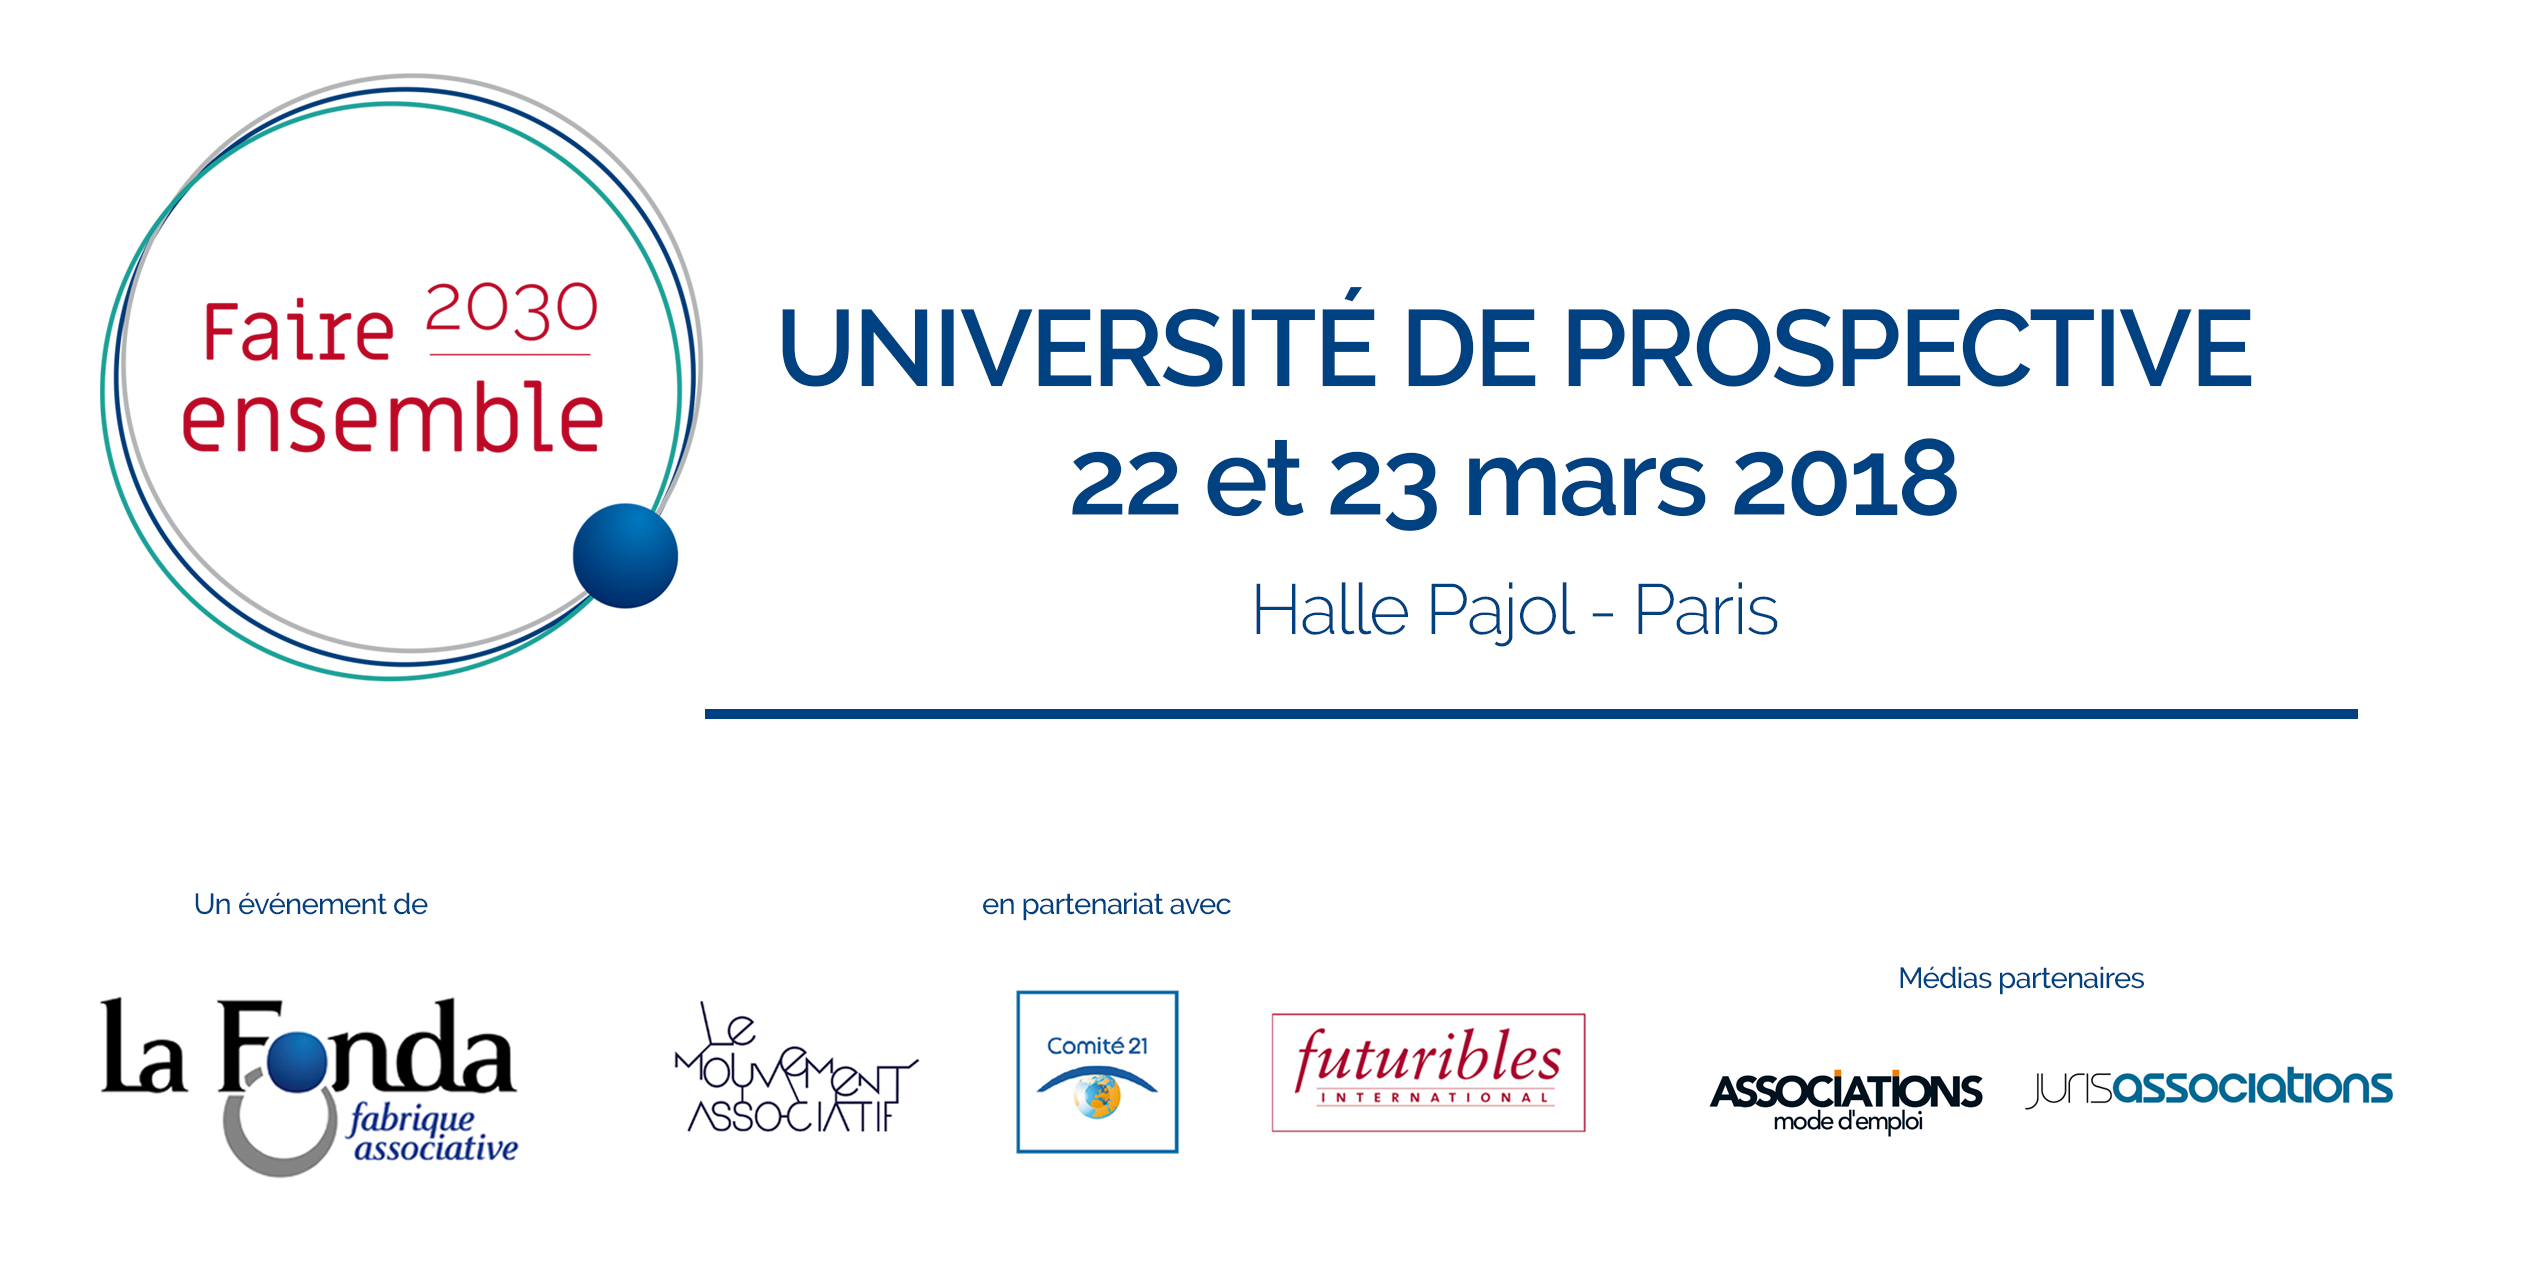 Université De Prospective « Faire Ensemble 2030 » – 22 Et 23 Mars à Paris